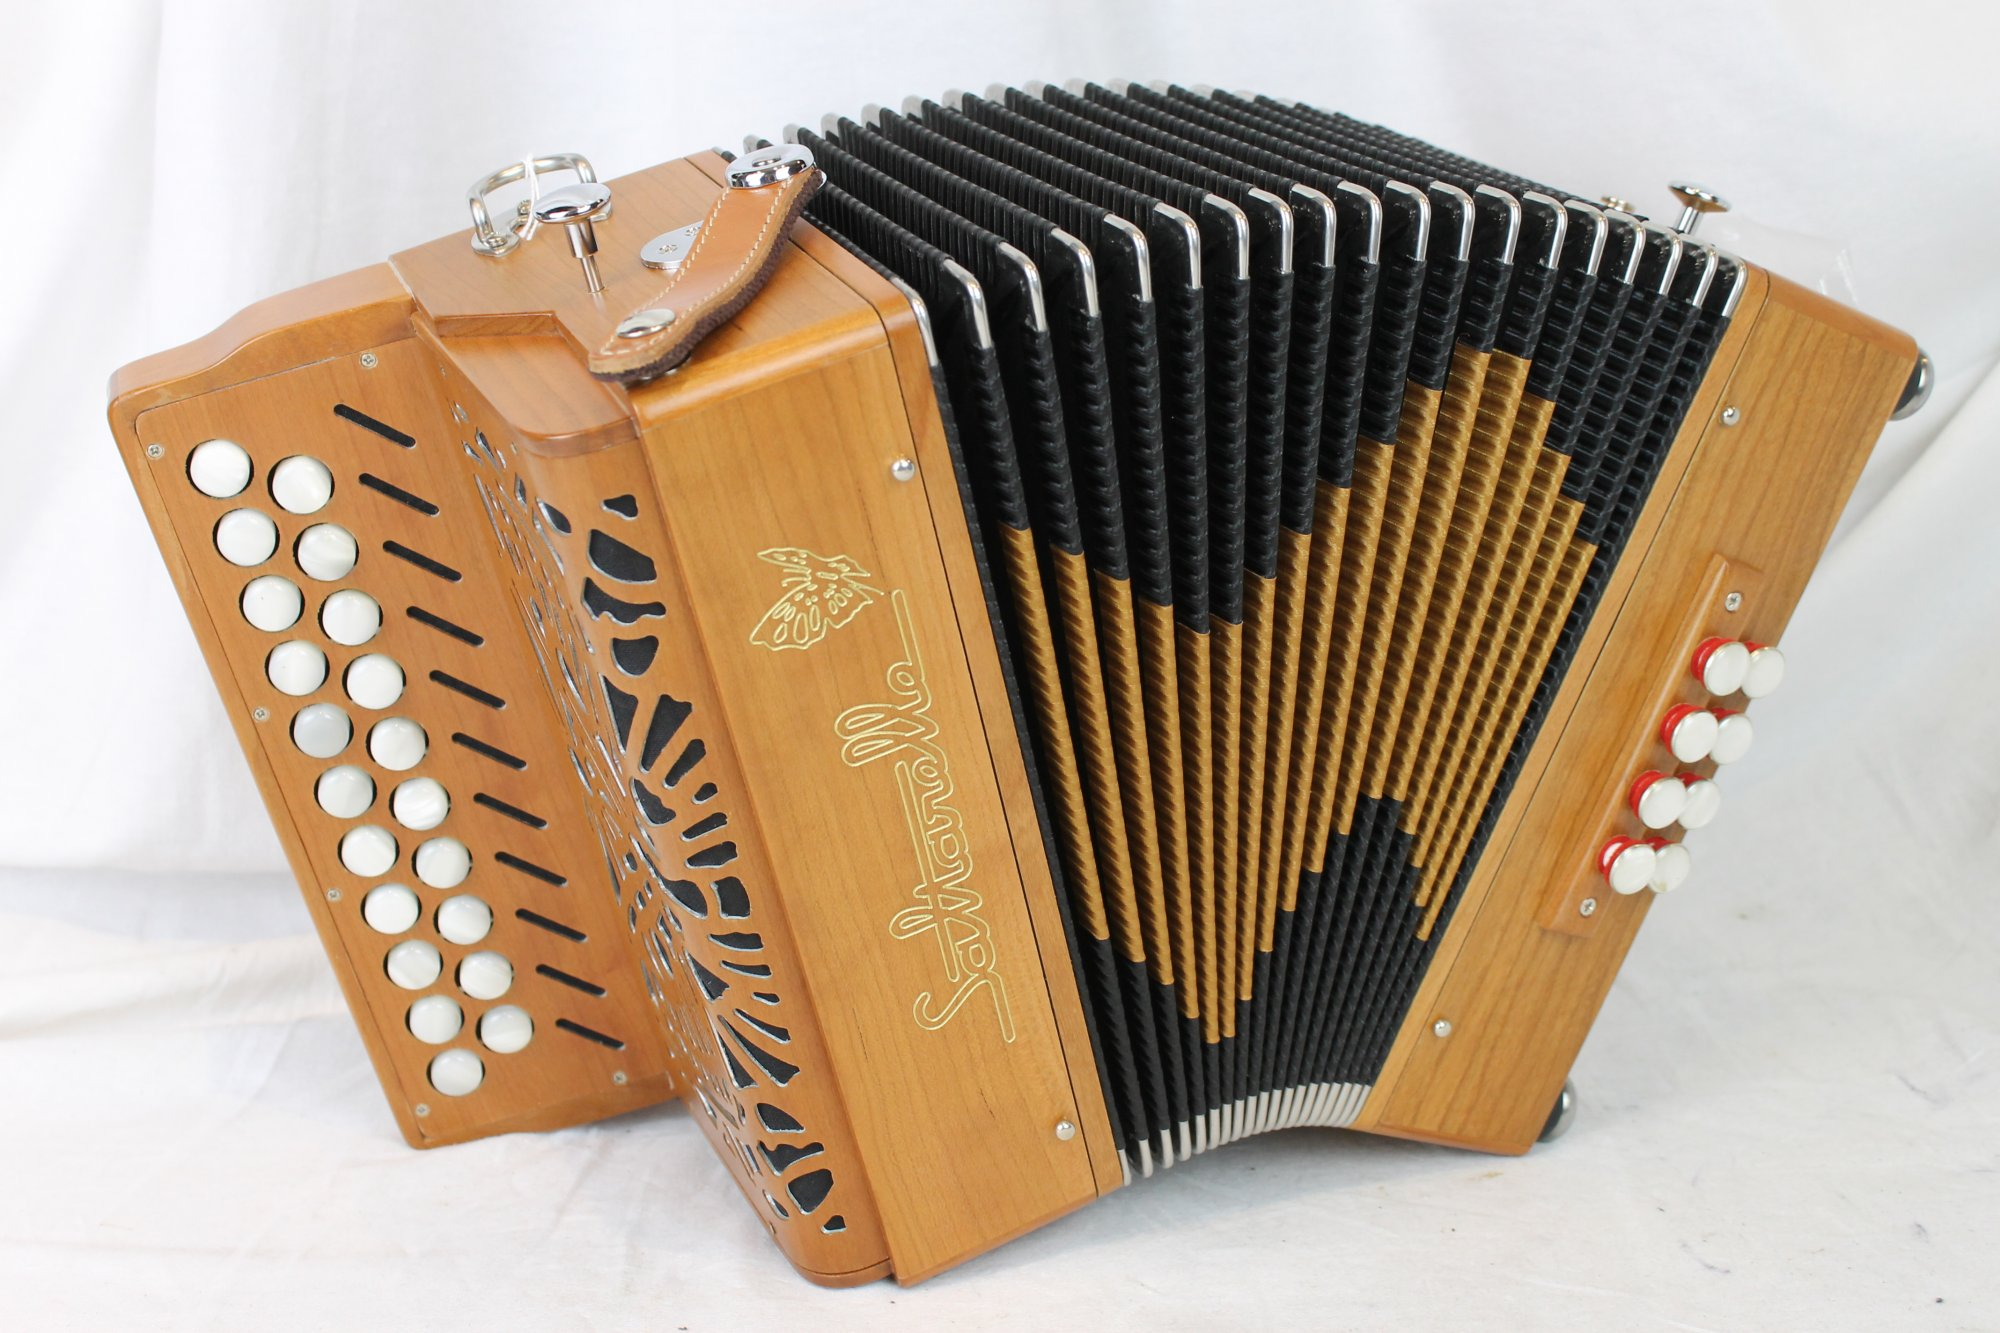 NEW Cherry Saltarelle Aether III Diatonic Button Accordion C# D LMM 21 8